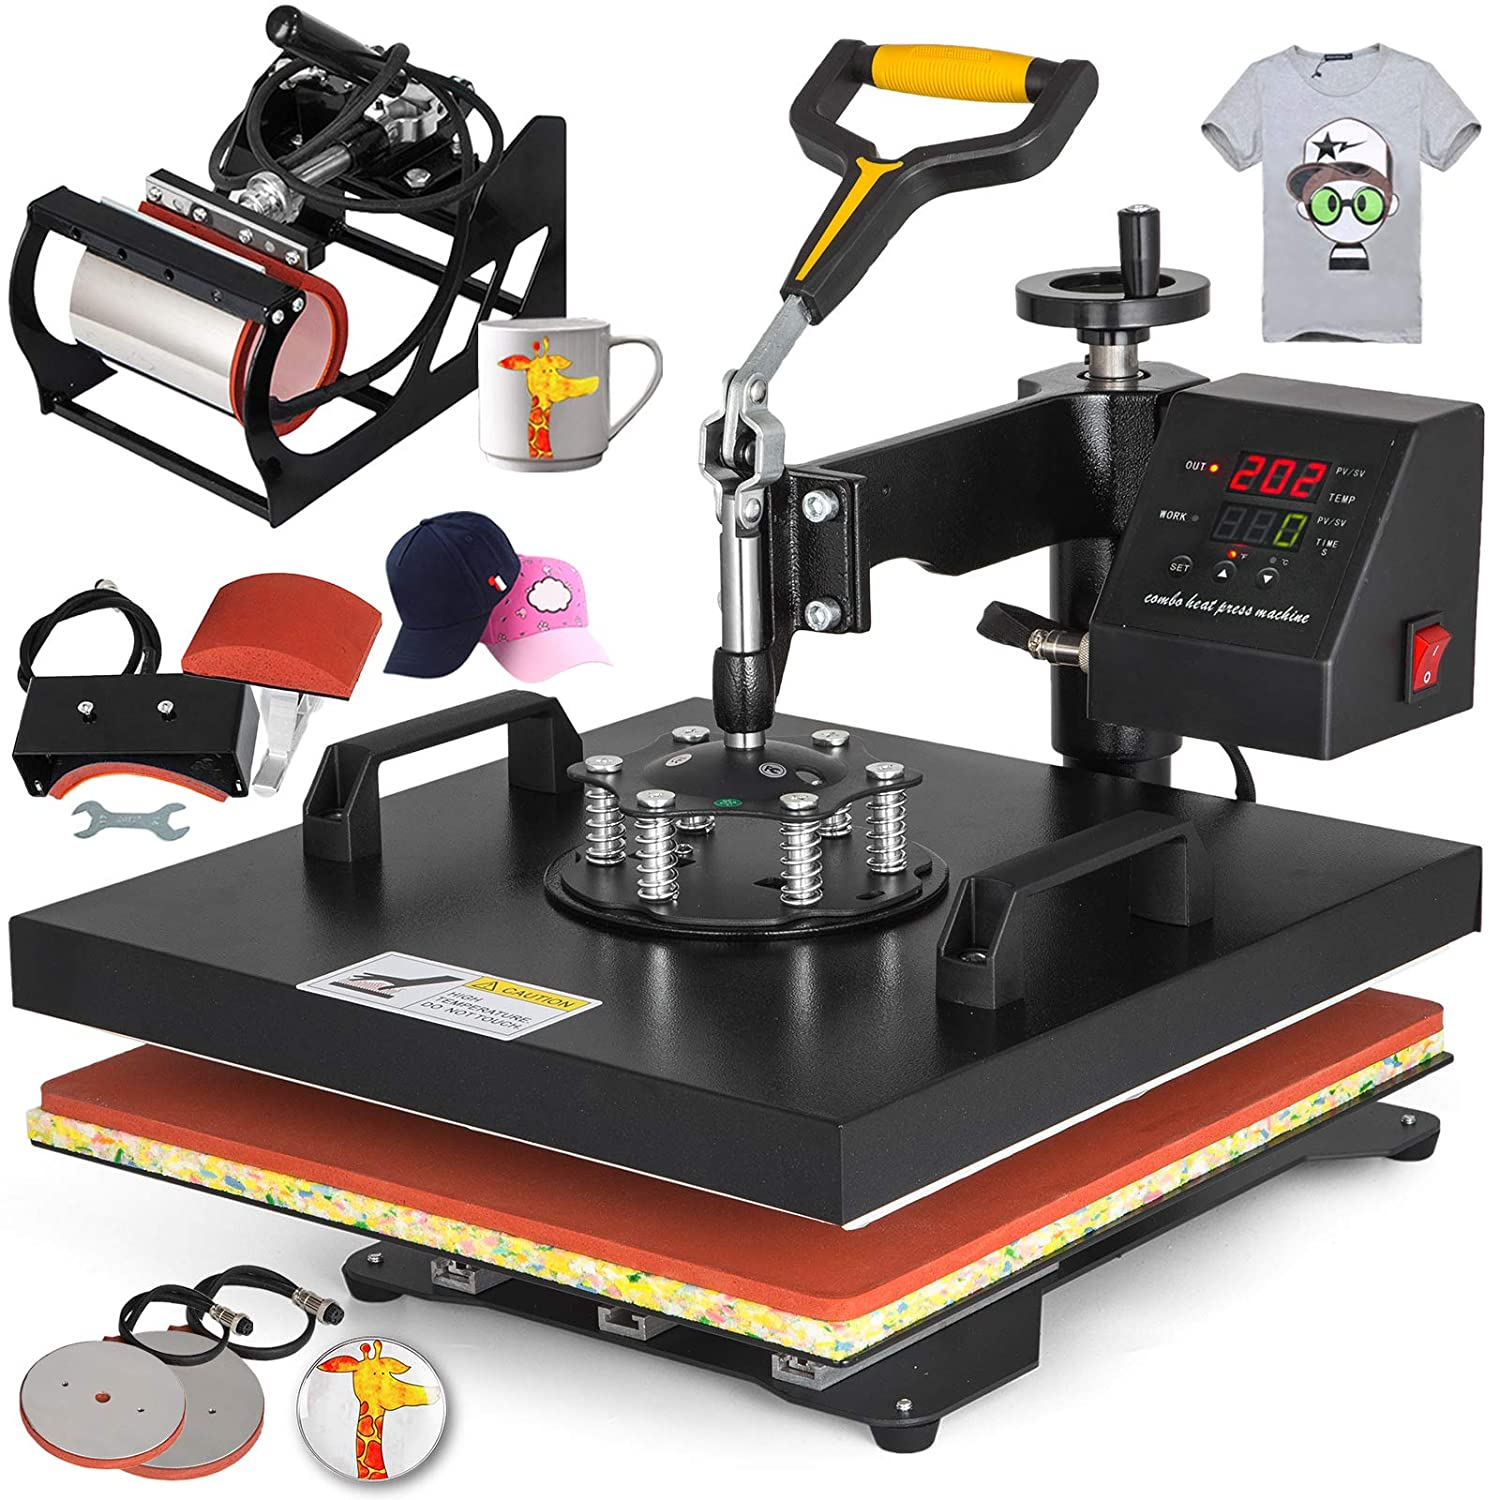 VEVOR 12 X 15 Inch 8 in 1 Heat Press Digital LCD Controller T Shirts Press Machine Swing Away Design Heat Press Machine Transfer Sublimation Hat Mug Cap Plate Mouse Pad 12x15INCH 8IN1 Red